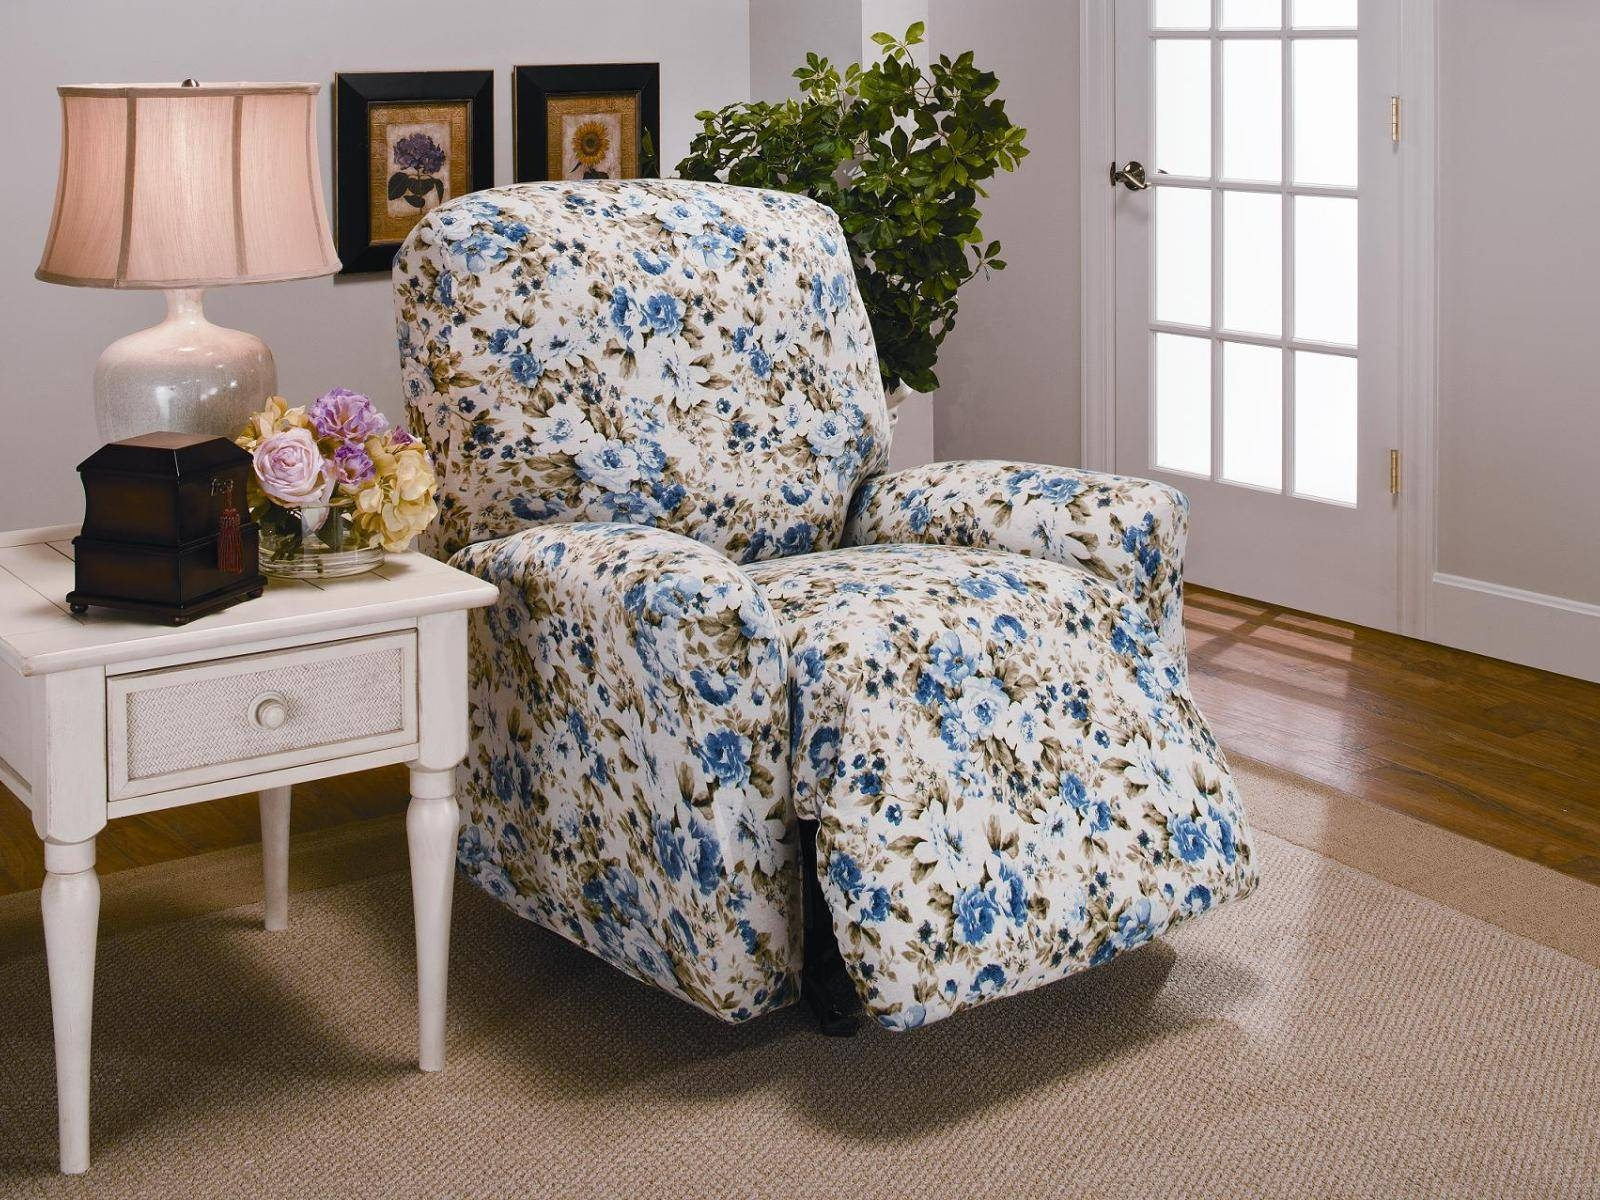 Sofas Center : Fascinating Floral Sofa Covers Picture Inspirations within Clearance Sofa Covers (Image 19 of 30)